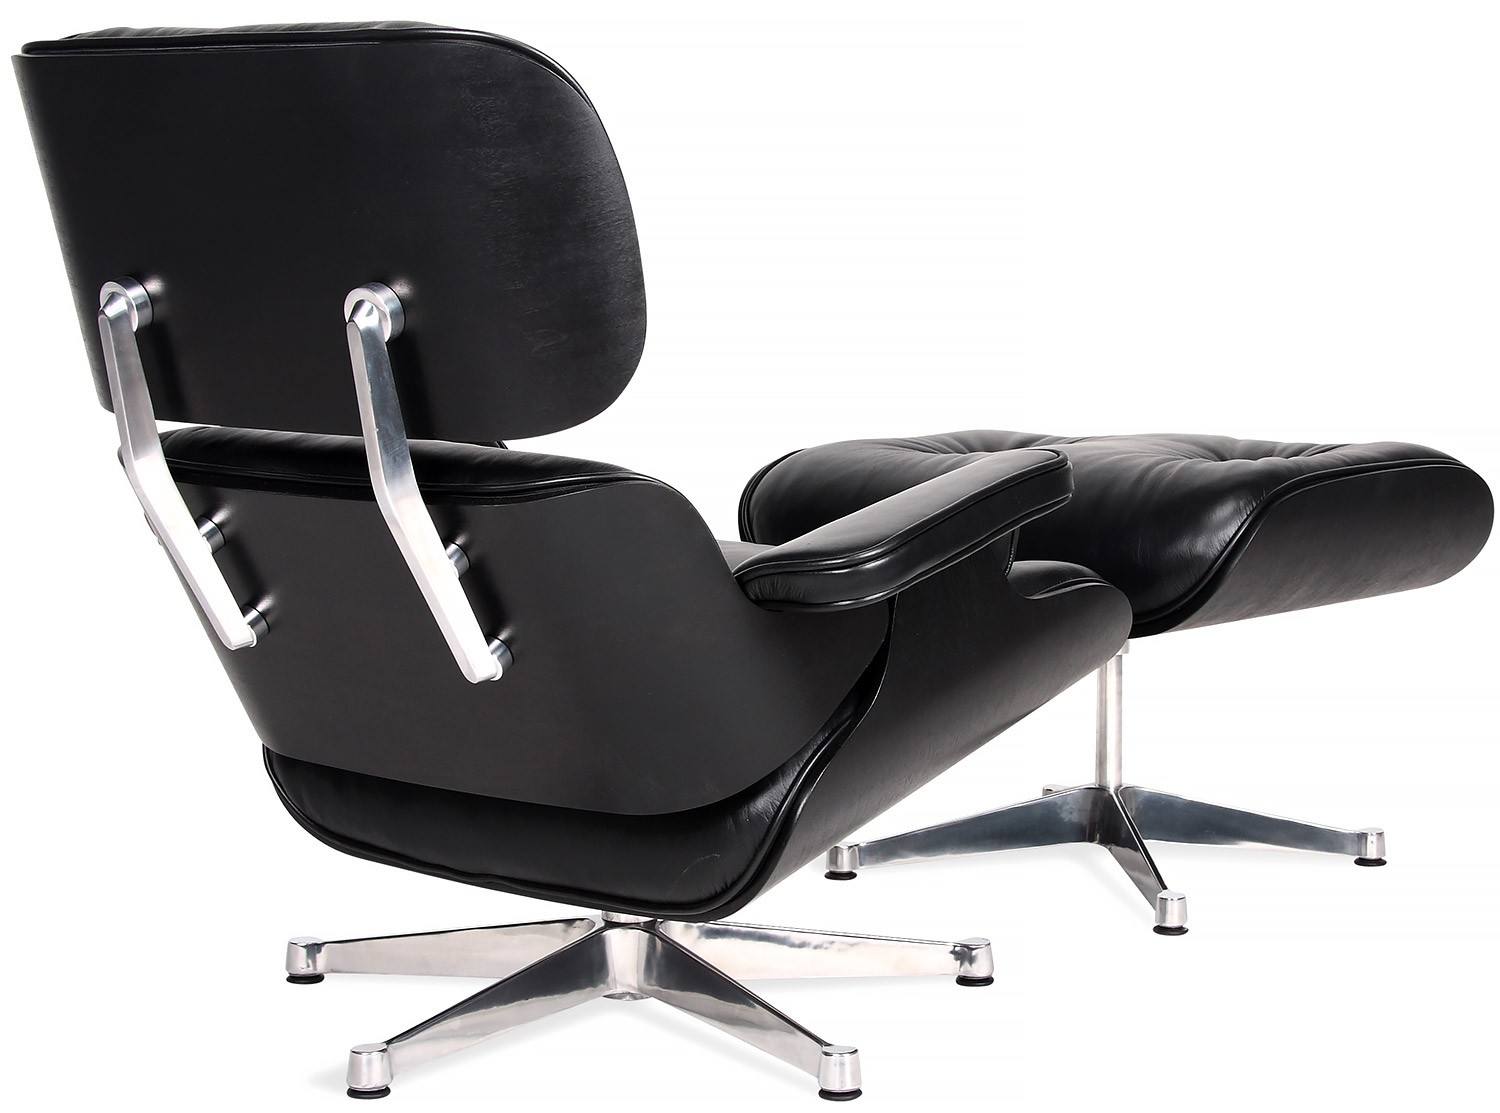 Eames Replica Eames Lounge Chair Replica Mrsapo